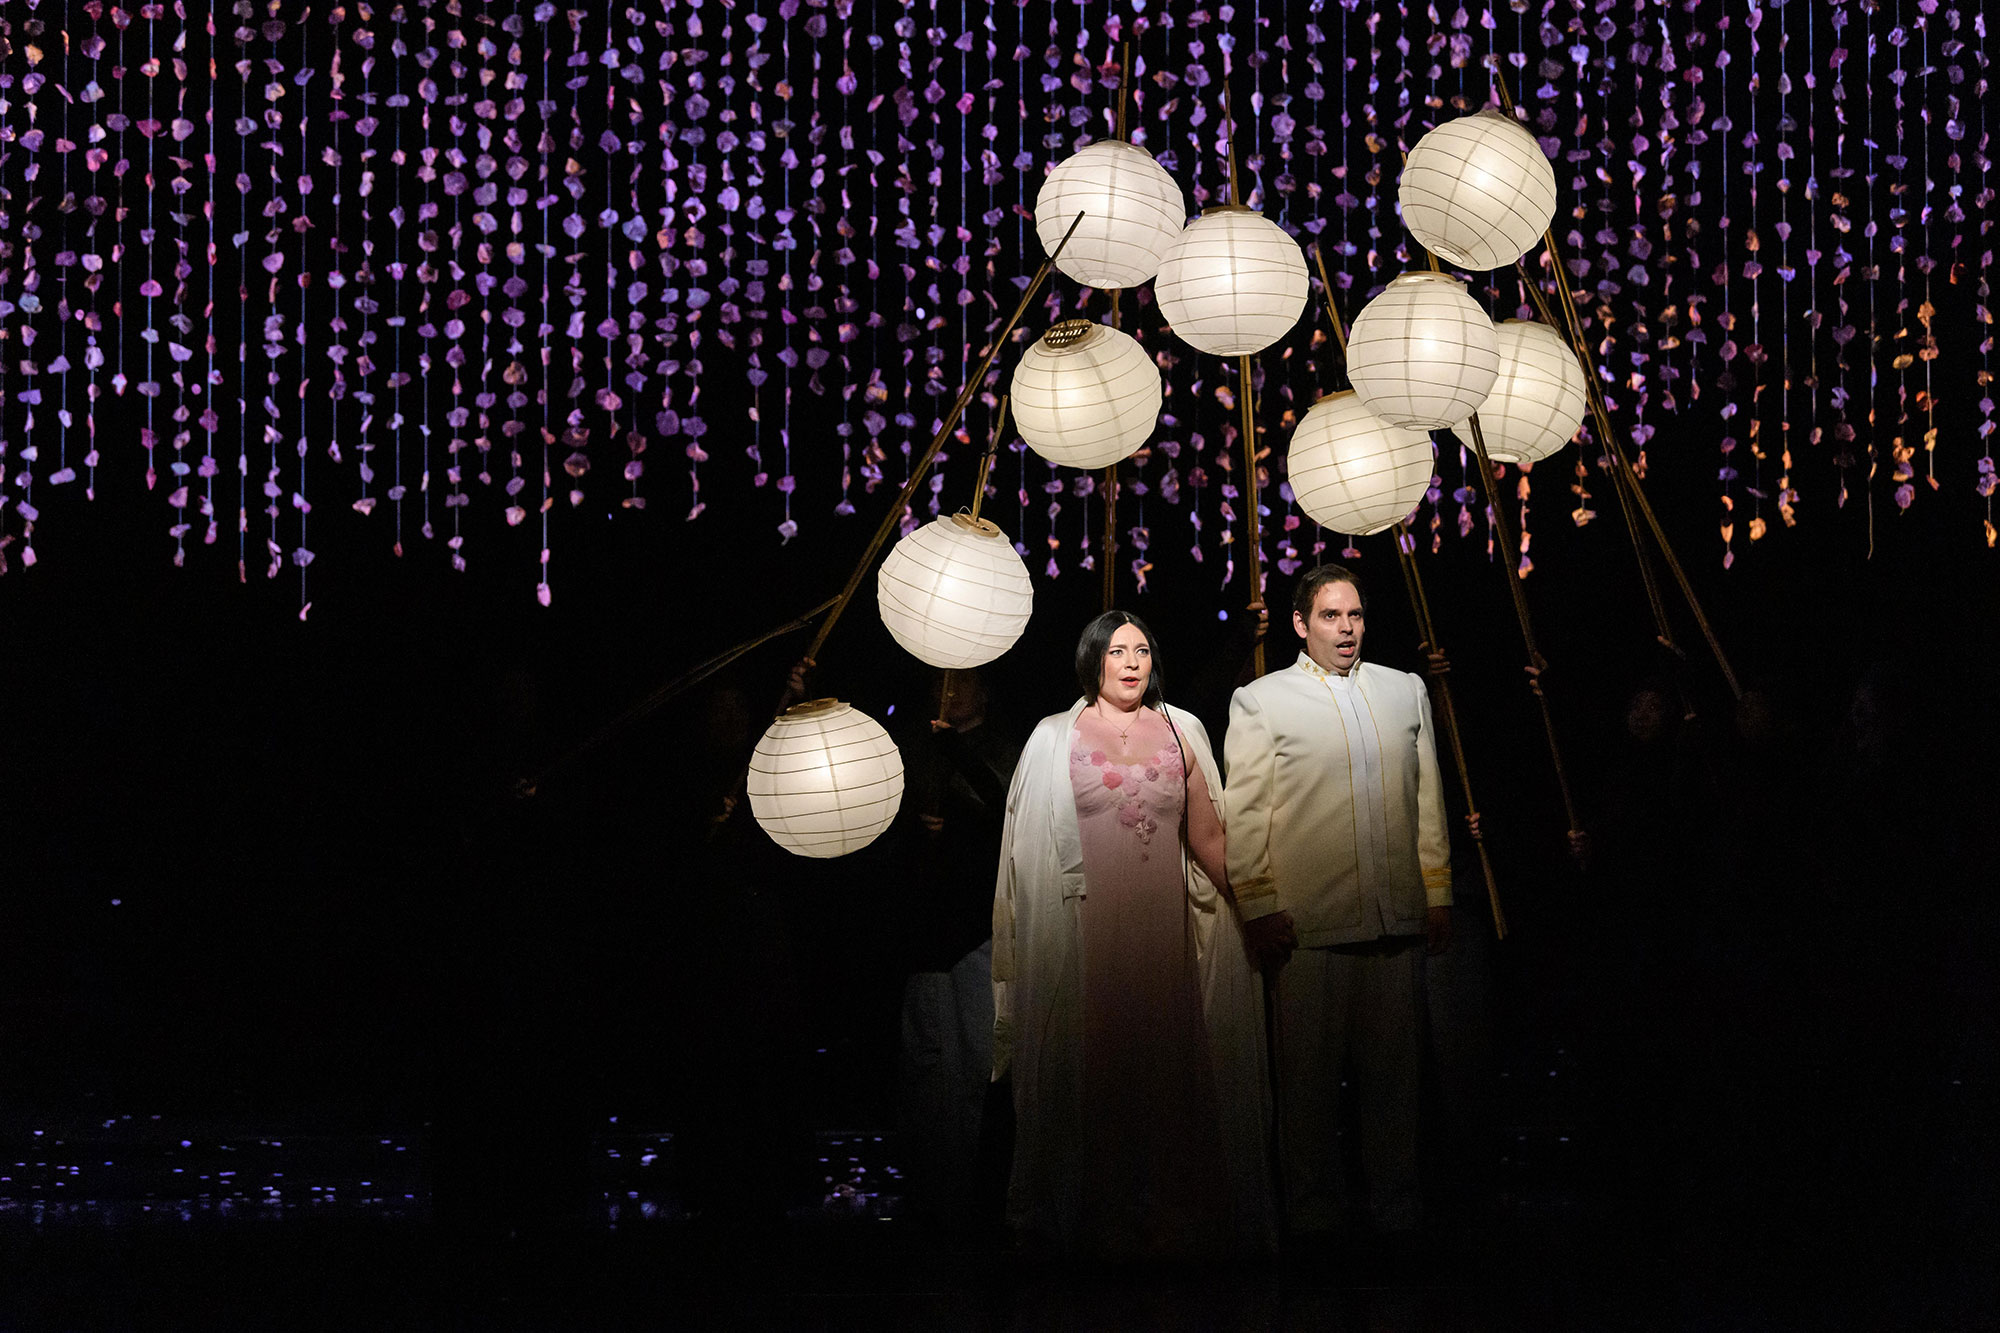 Cio-Cio San and Pinkerton stand in wedding dress, under paper lanterns casting soft light